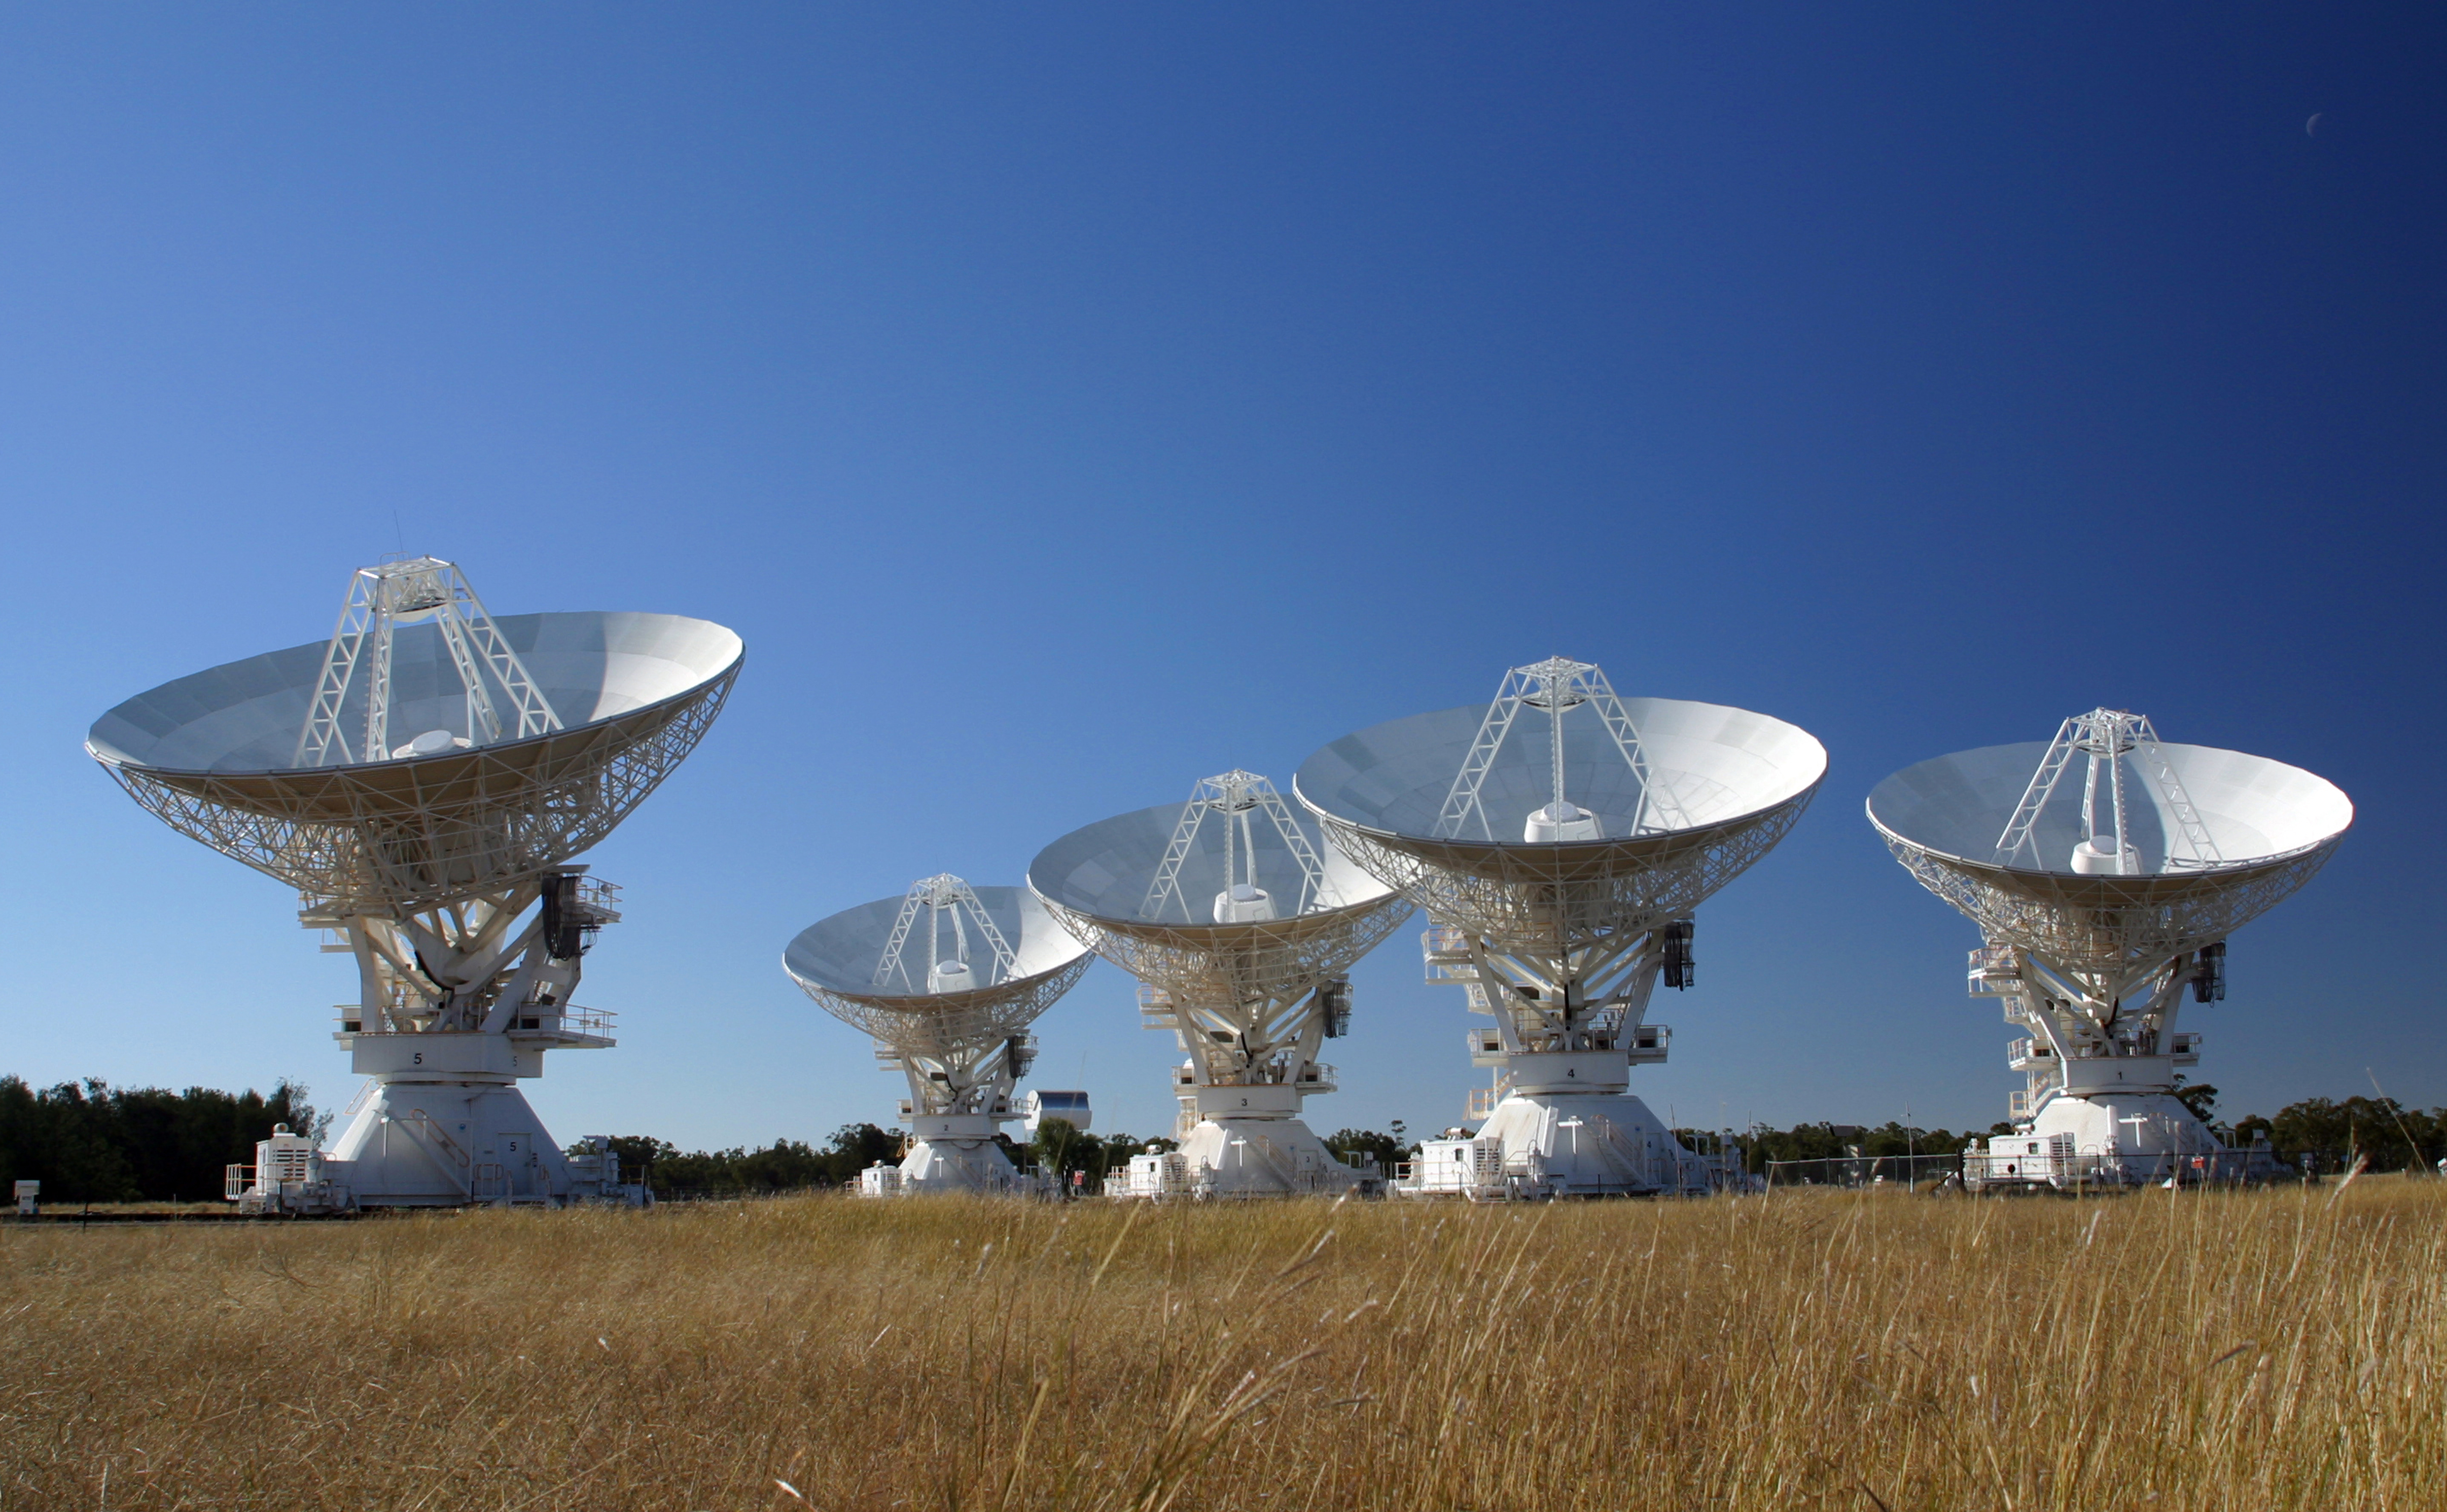 Five radio telescope dishes facing upwards set against a blue sky and wheat field in the foreground.